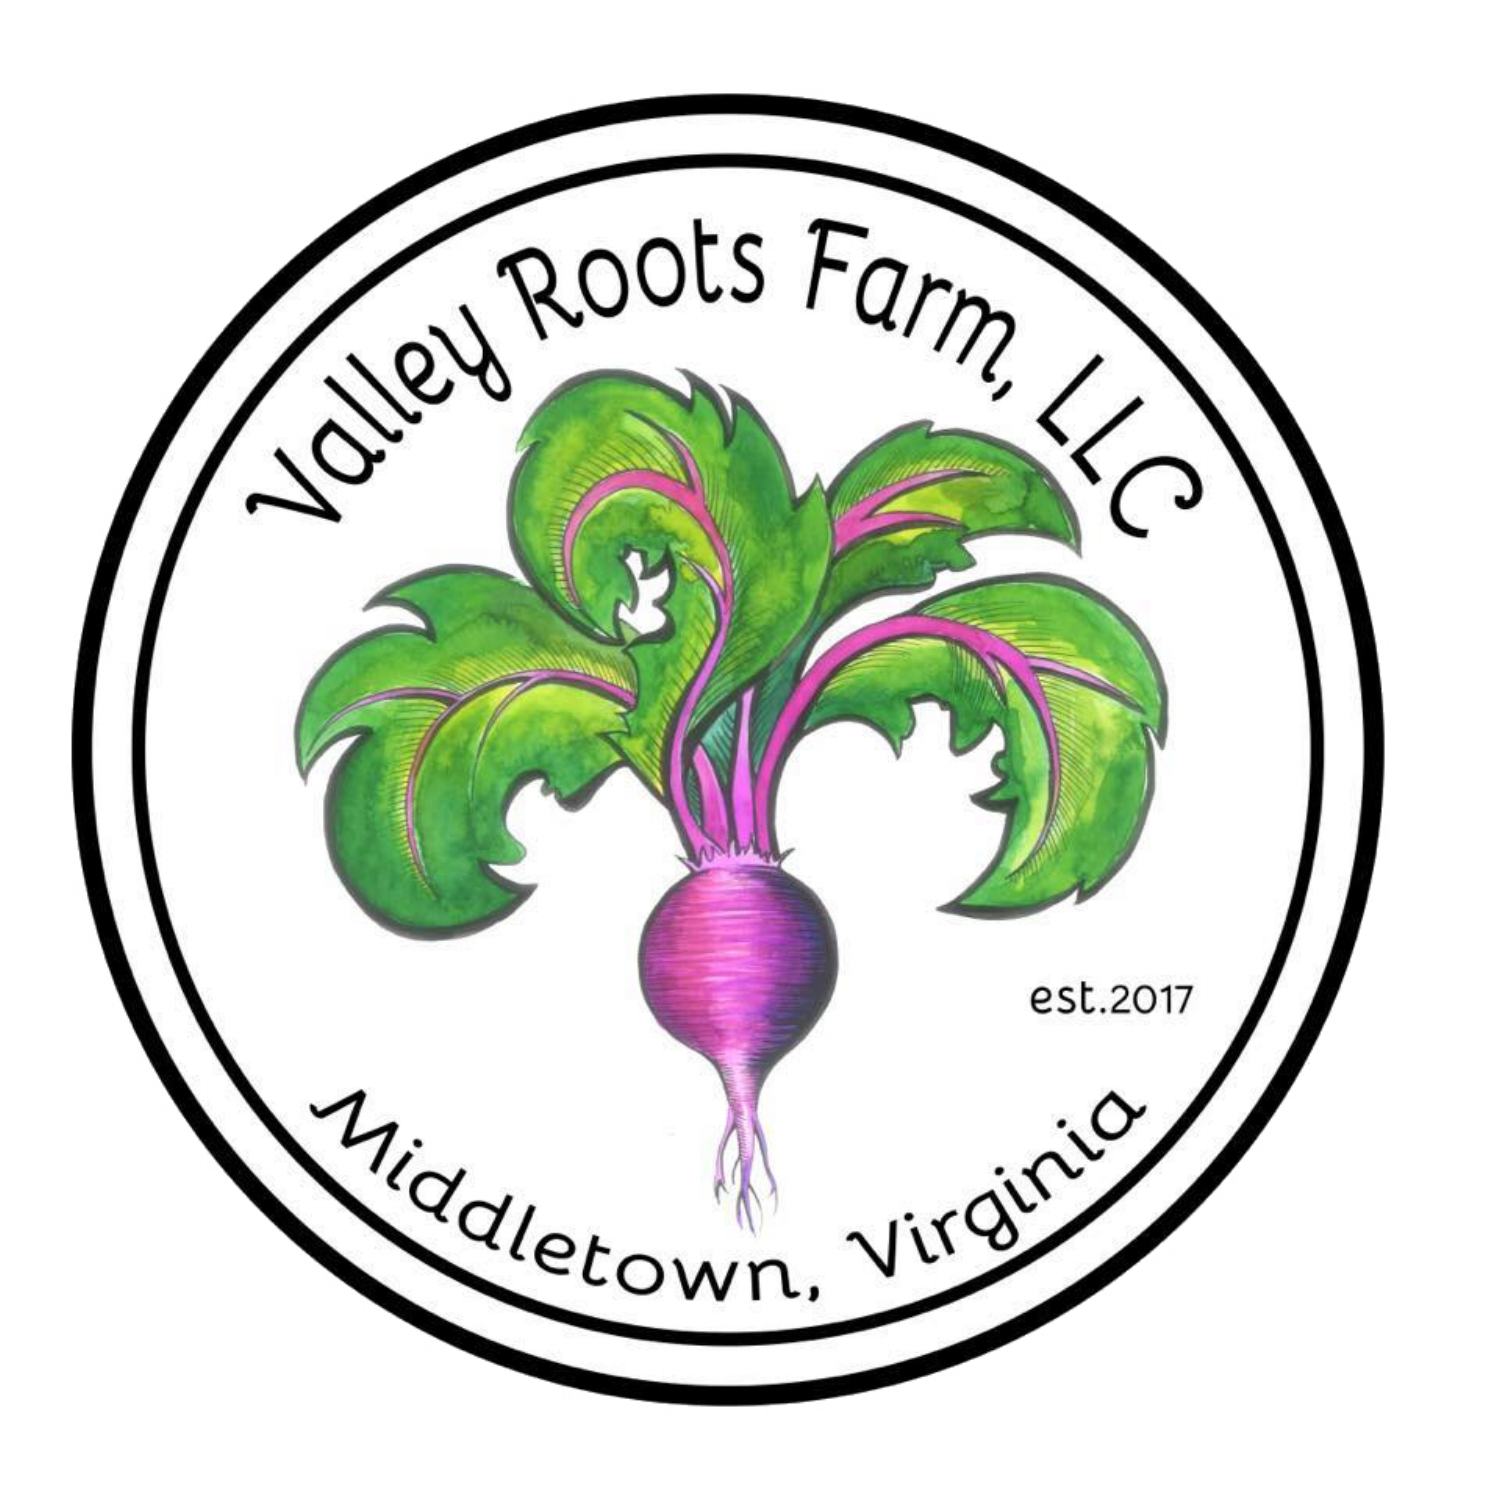 Valley Roots Farm, LLC